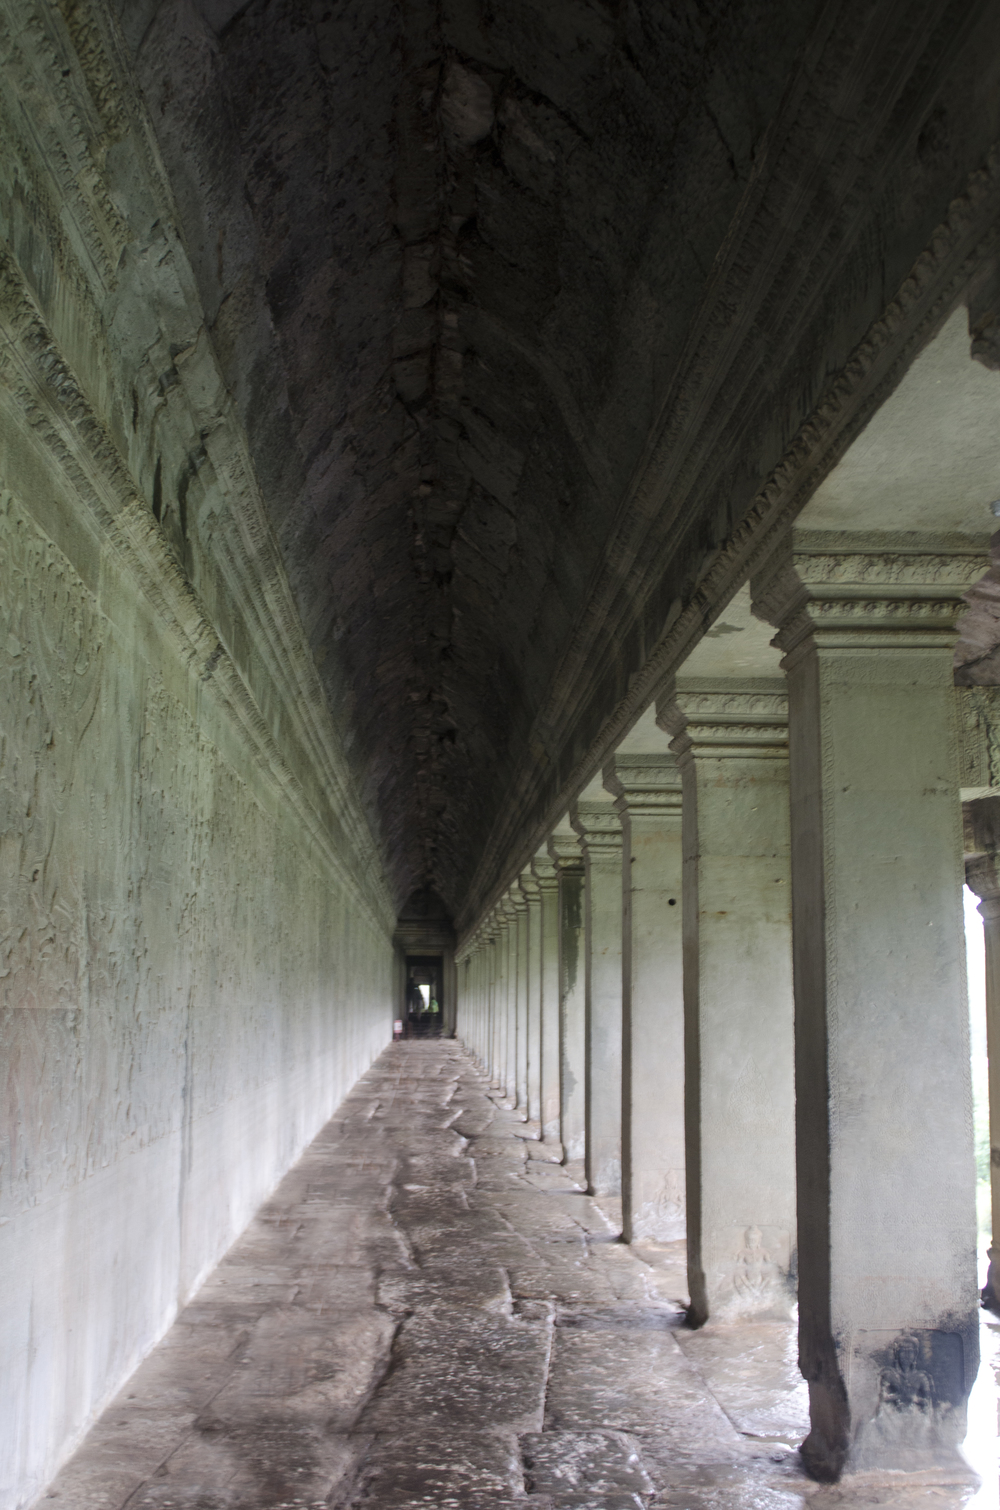 Standing in the outer gallery at Angkor Wat